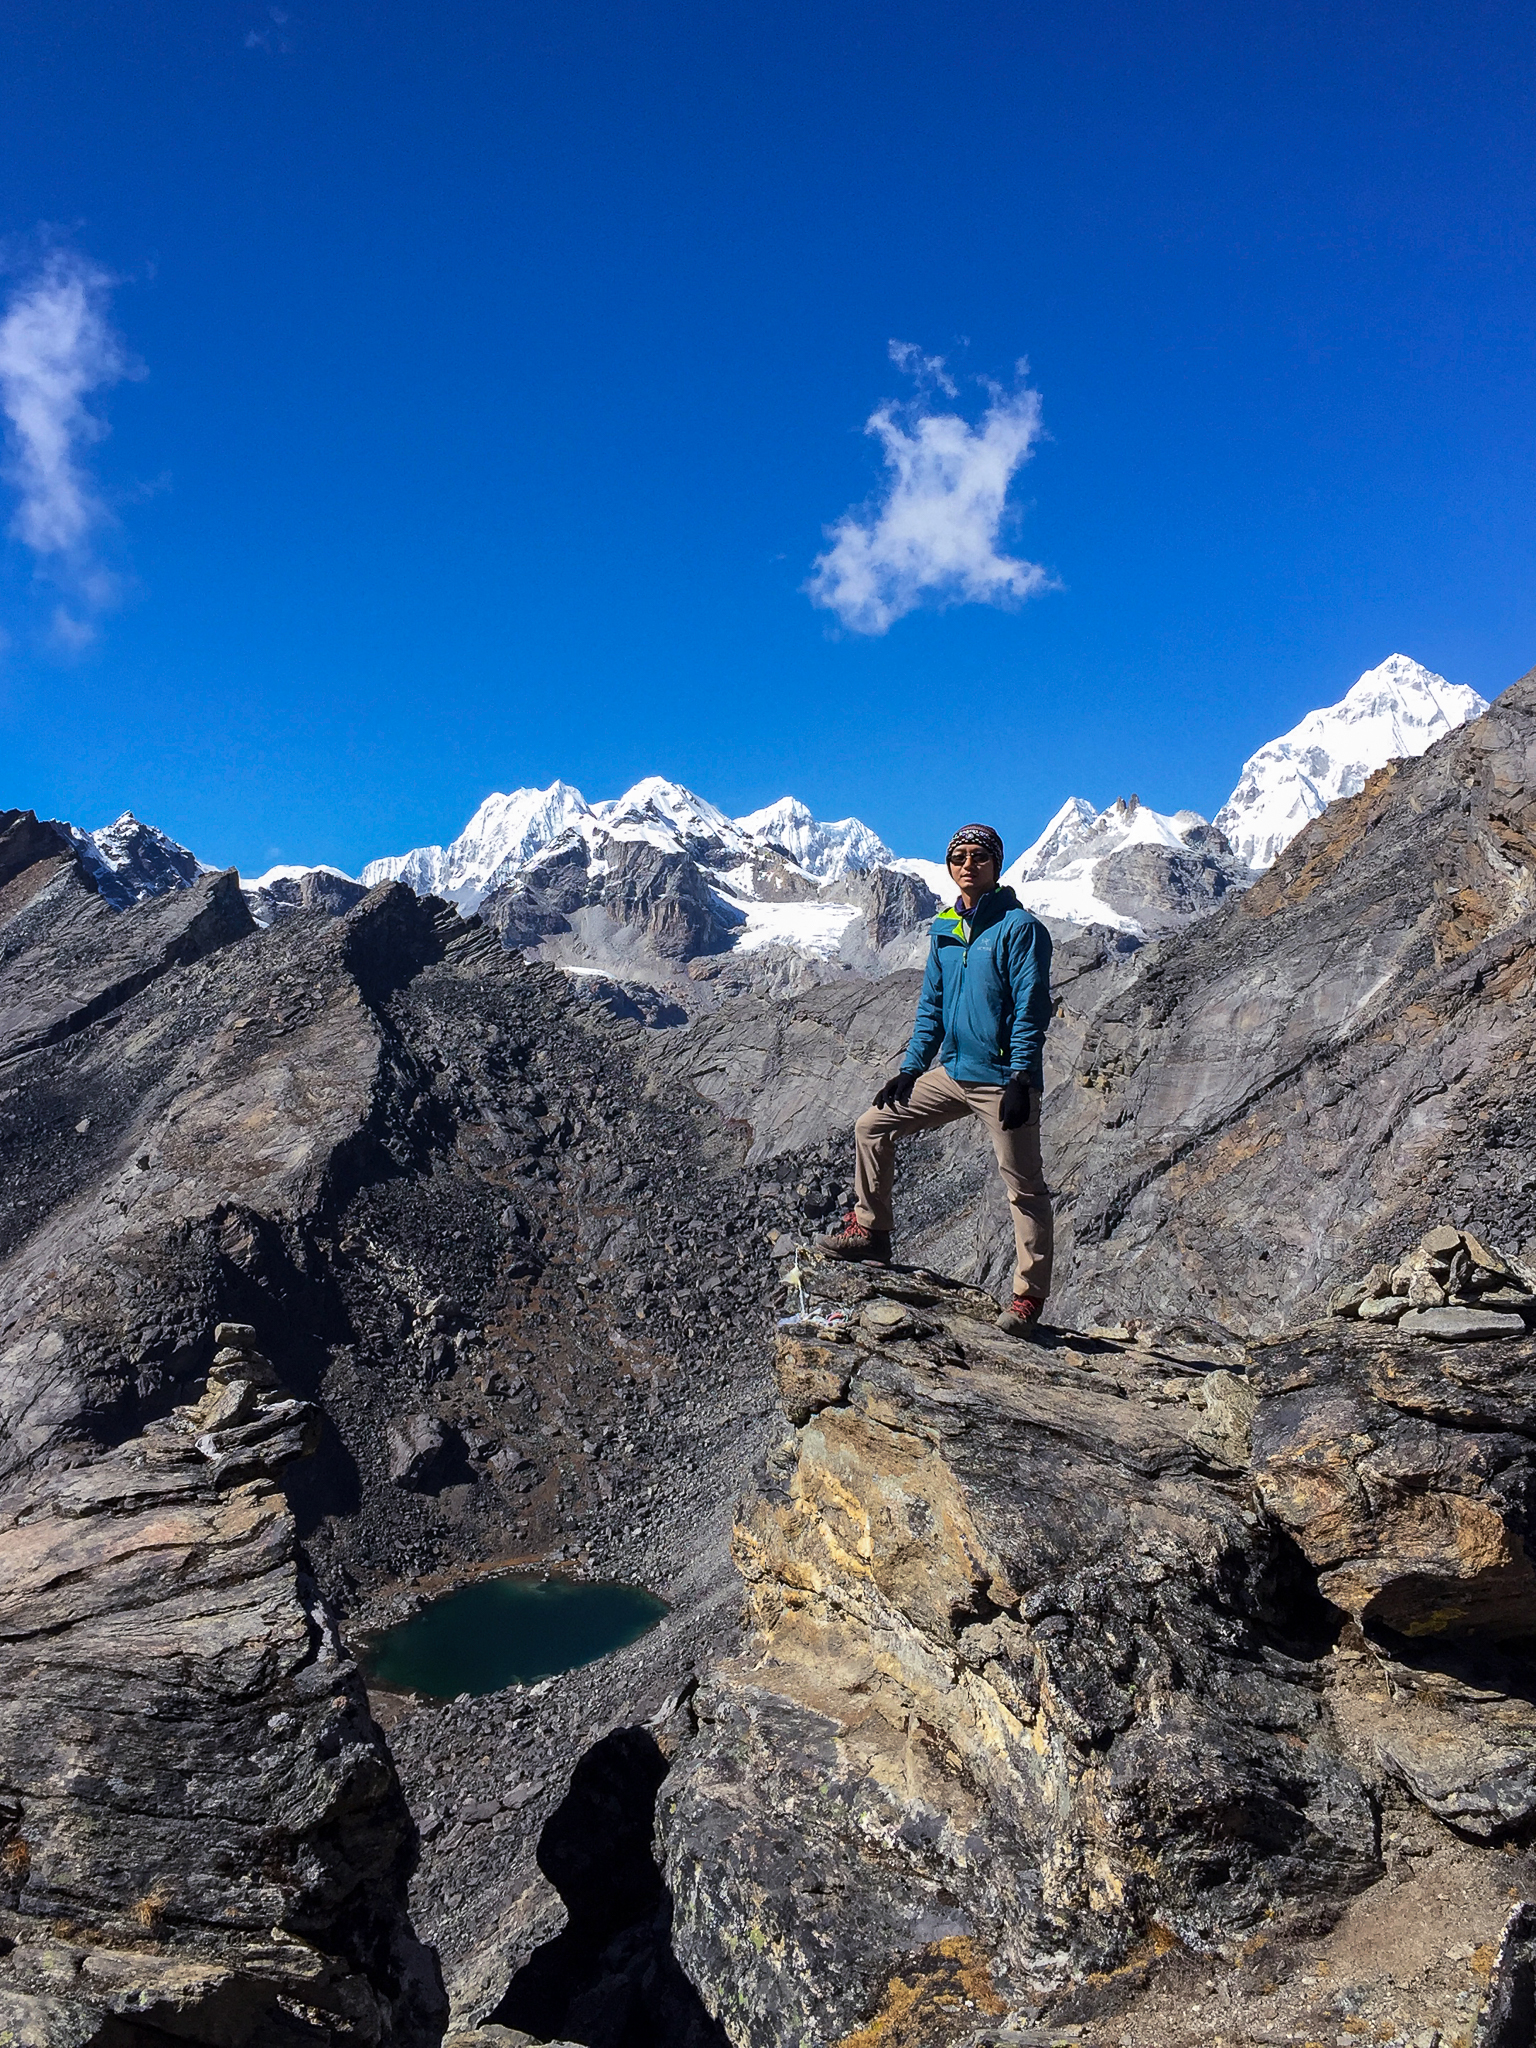 Me at the back view of the Gokyo Ri, where the clouds have not covered everything yet